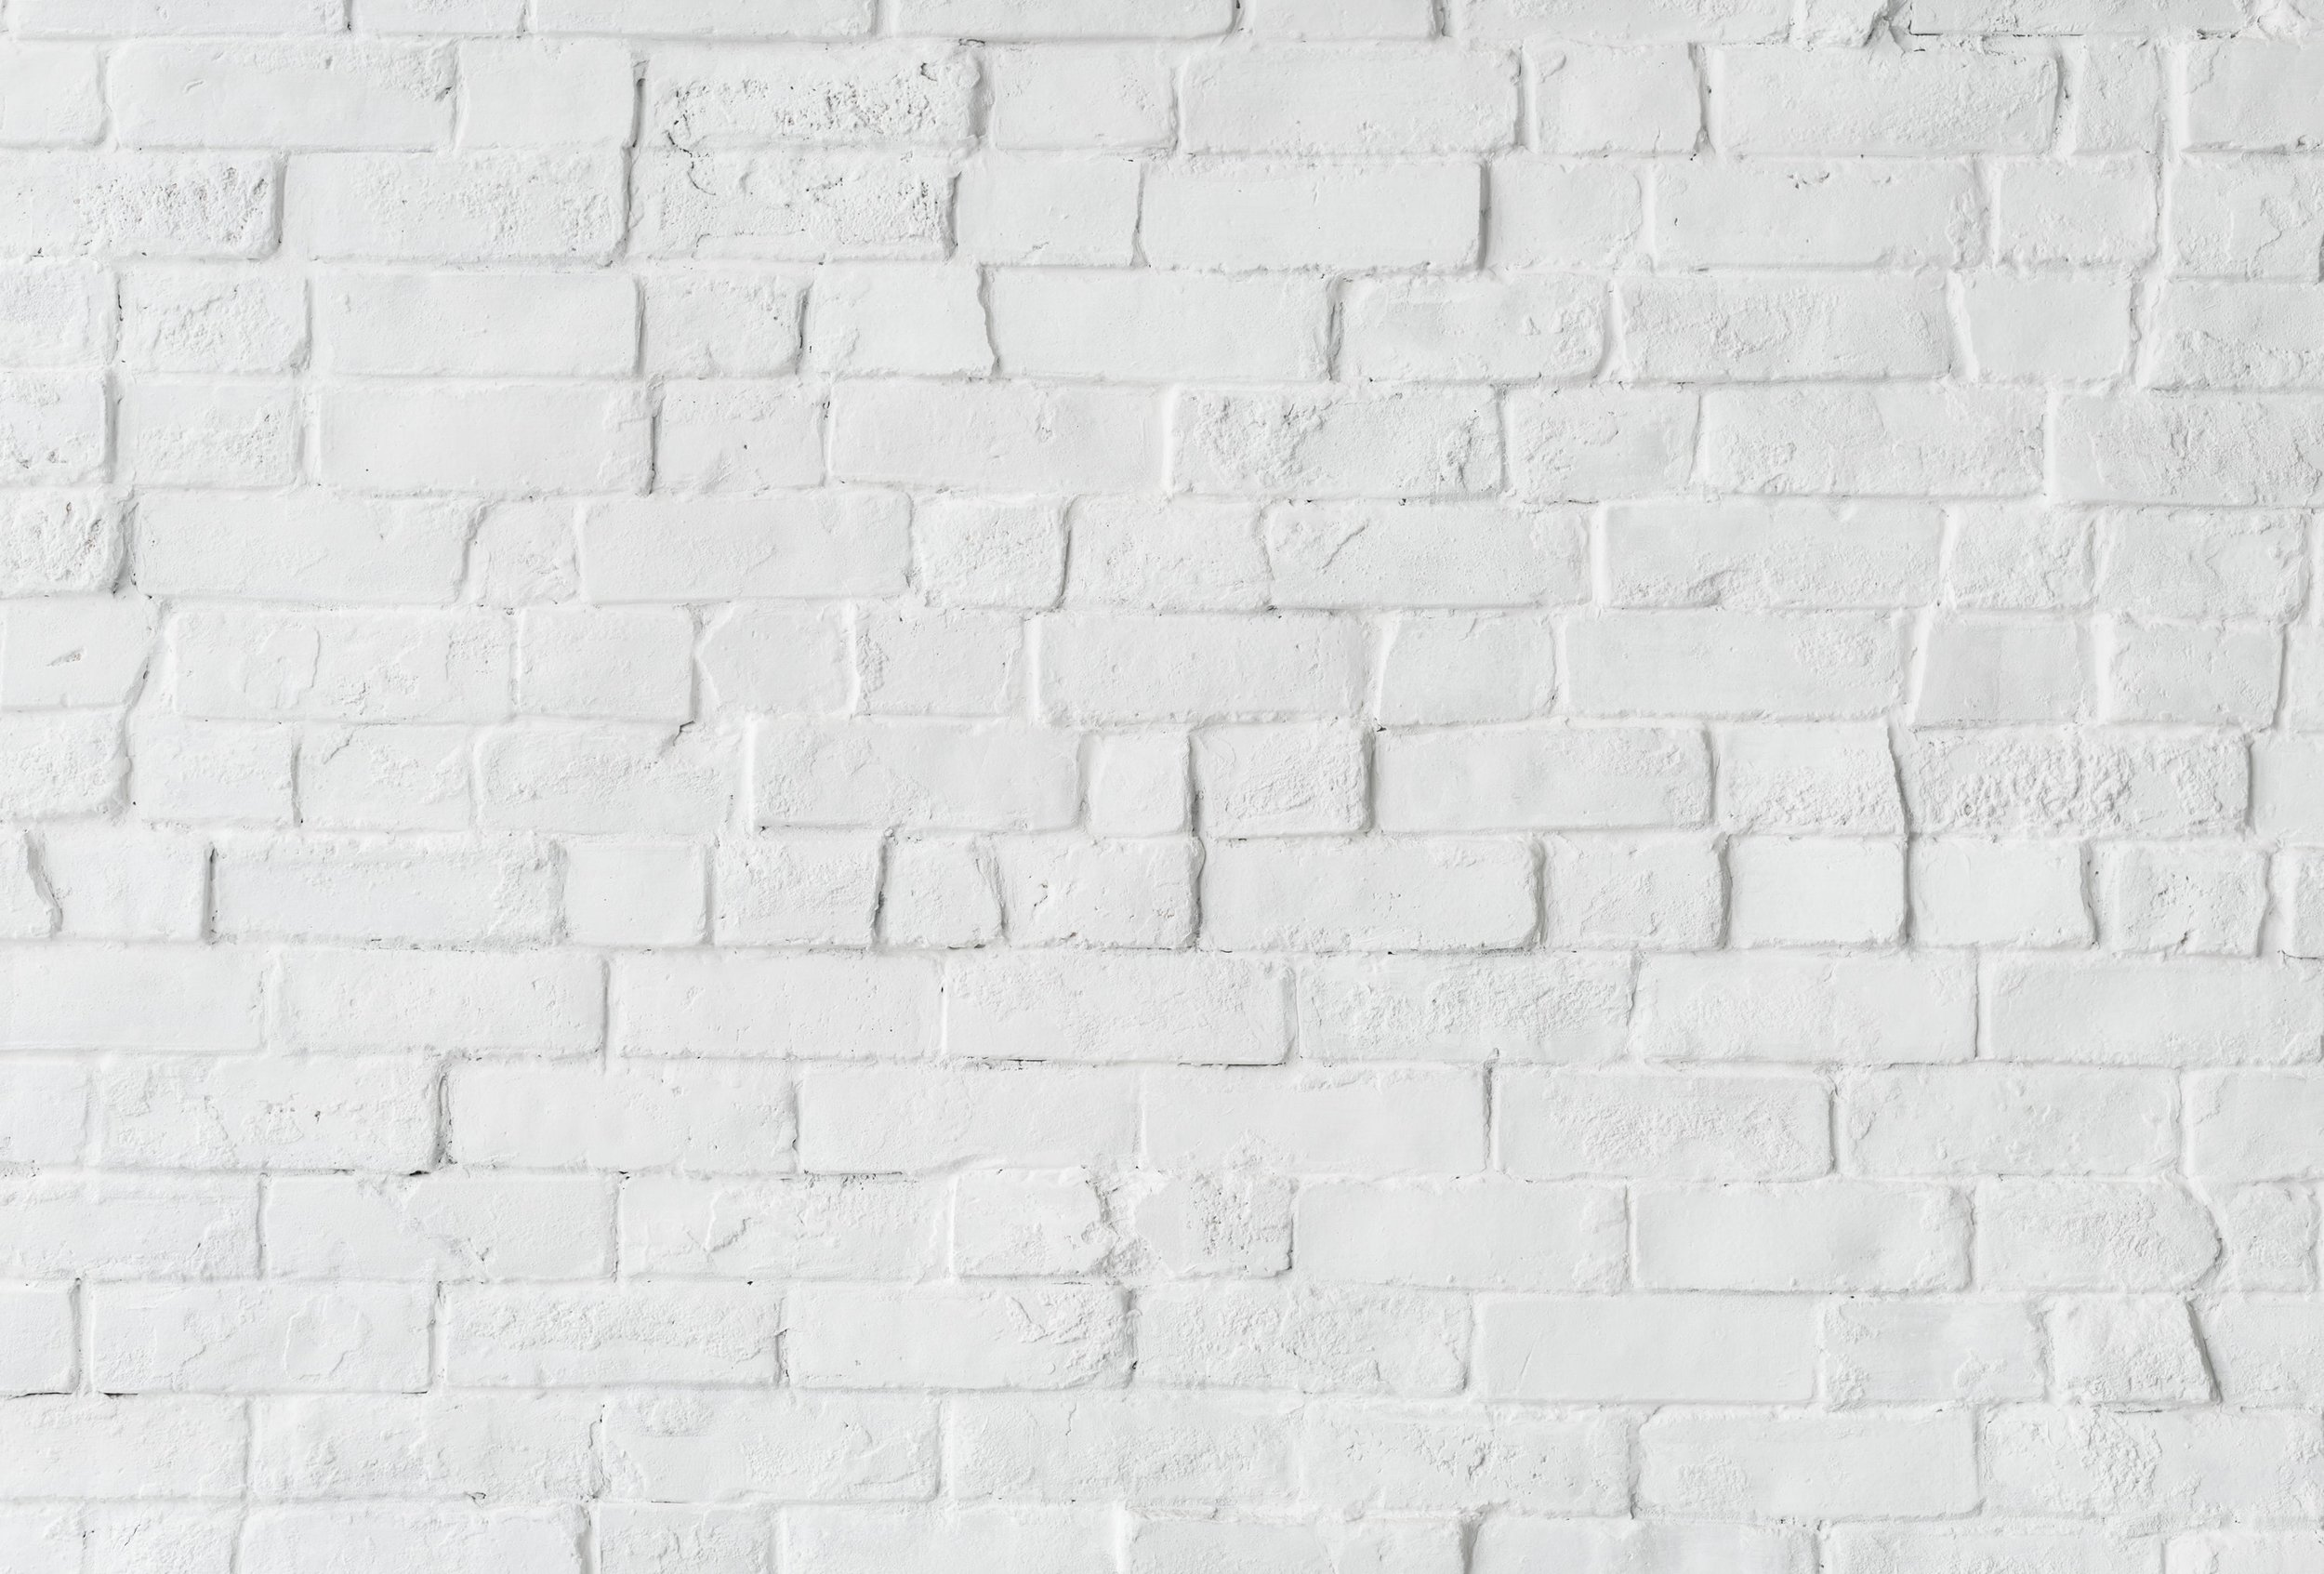 White_bricks.jpg